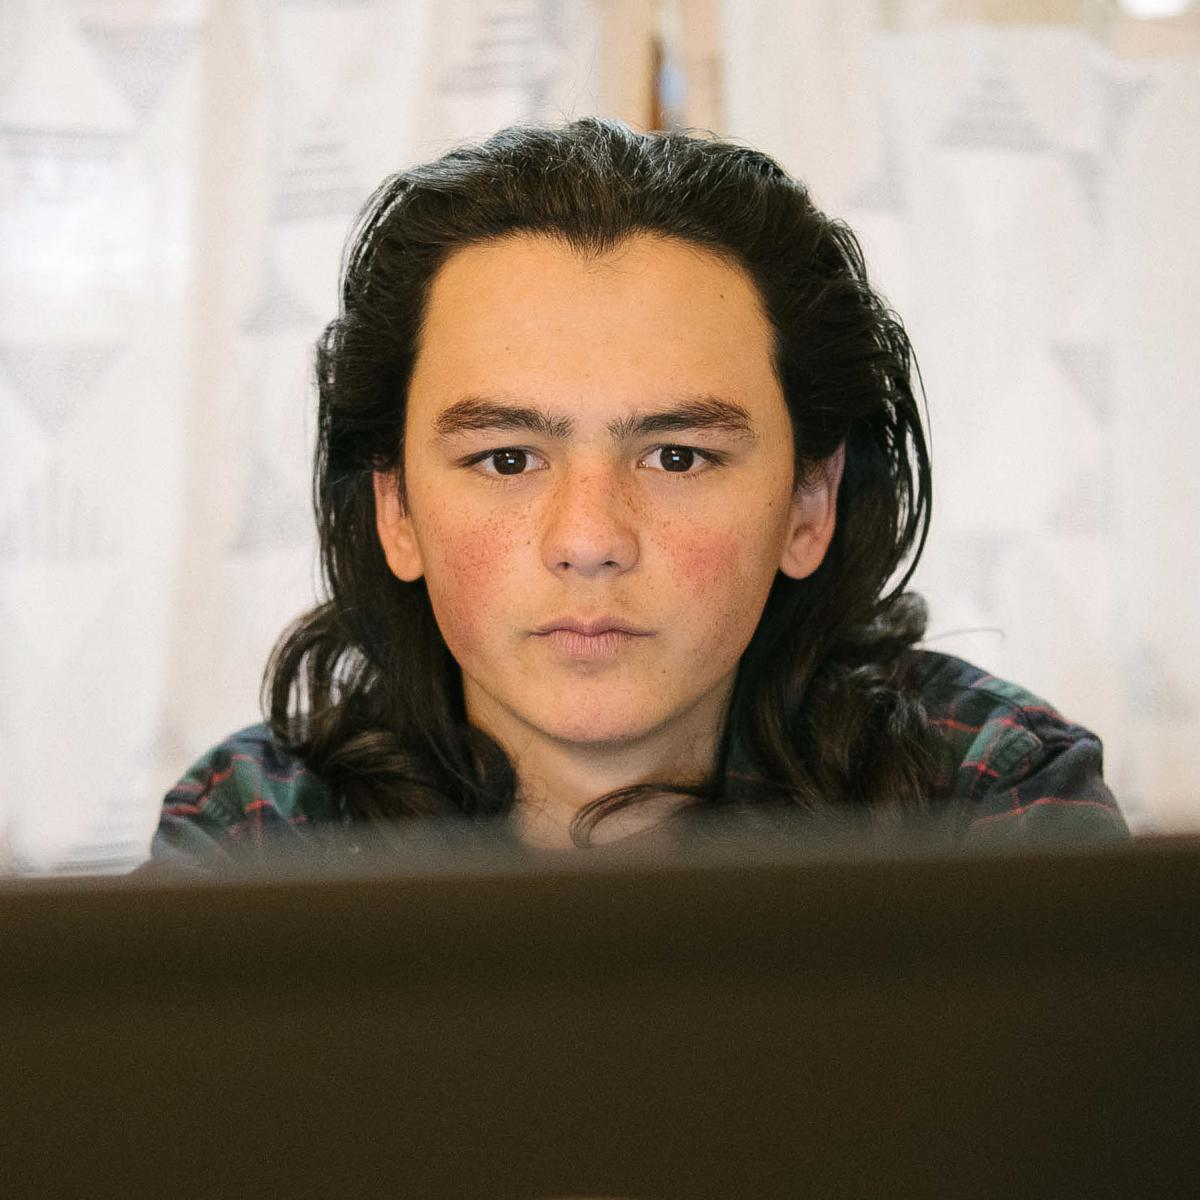 Sam Oozevaseuk Schimmel, 18, has grown up in both Alaska and Washington state. He is an advocate for Alaska Native youth.